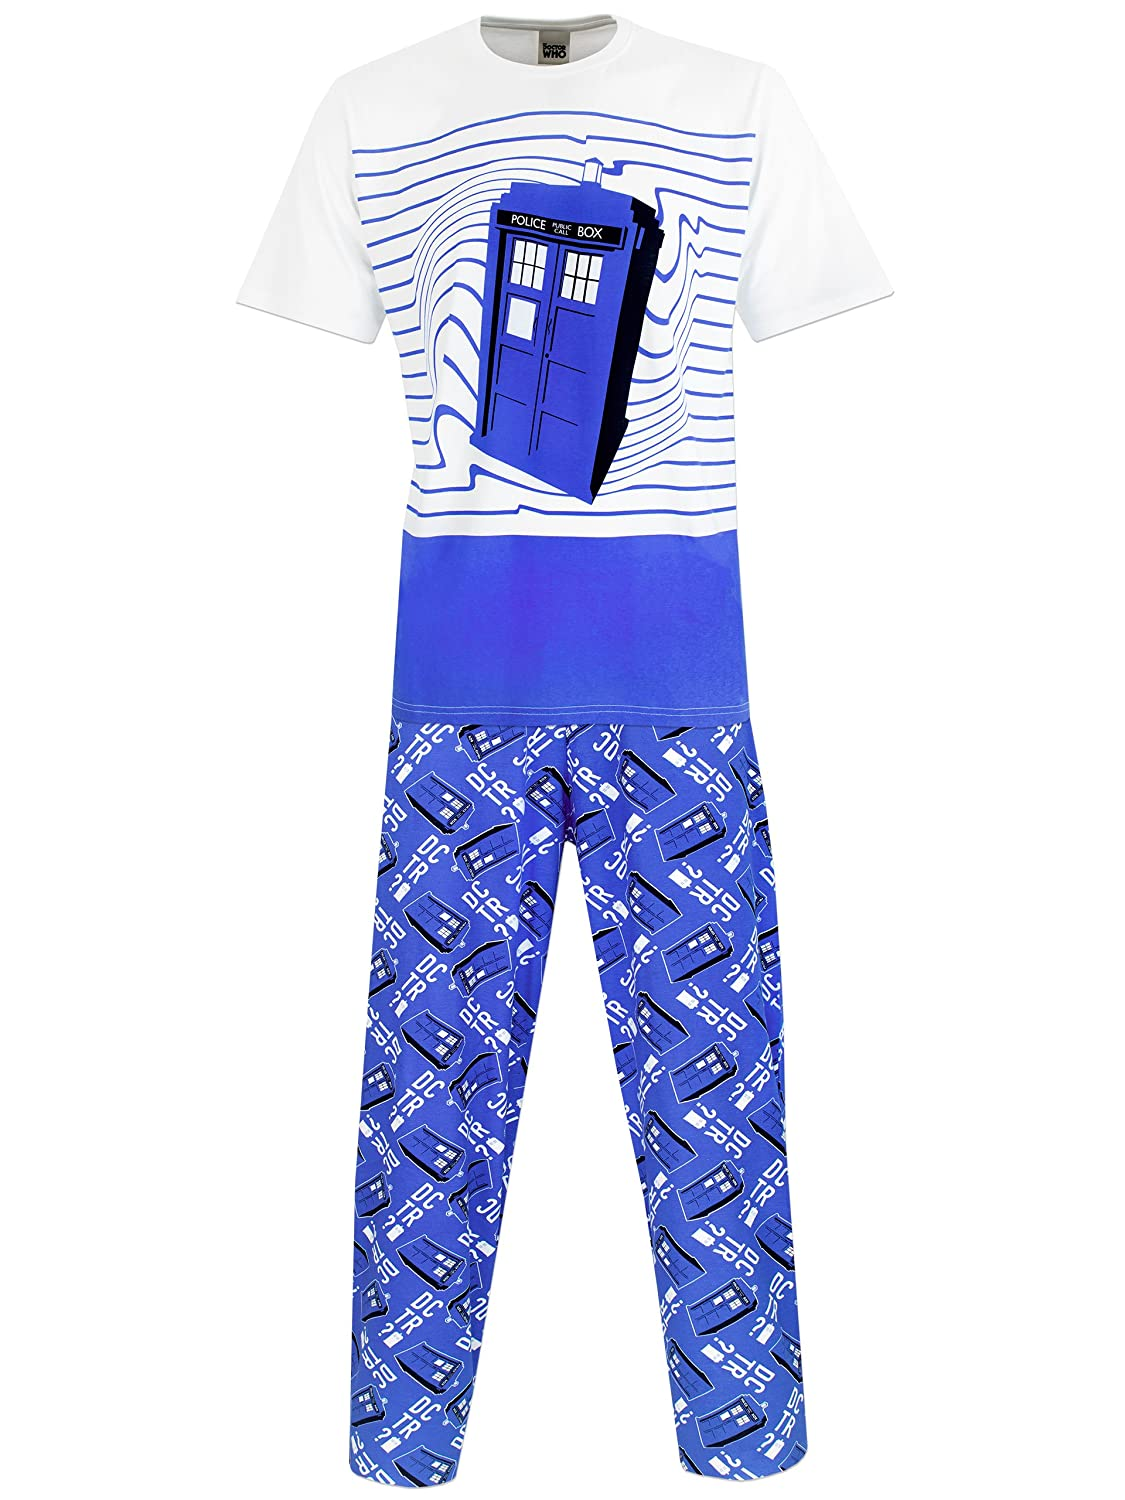 Dr Who Mens Doctor Who Pyjamas